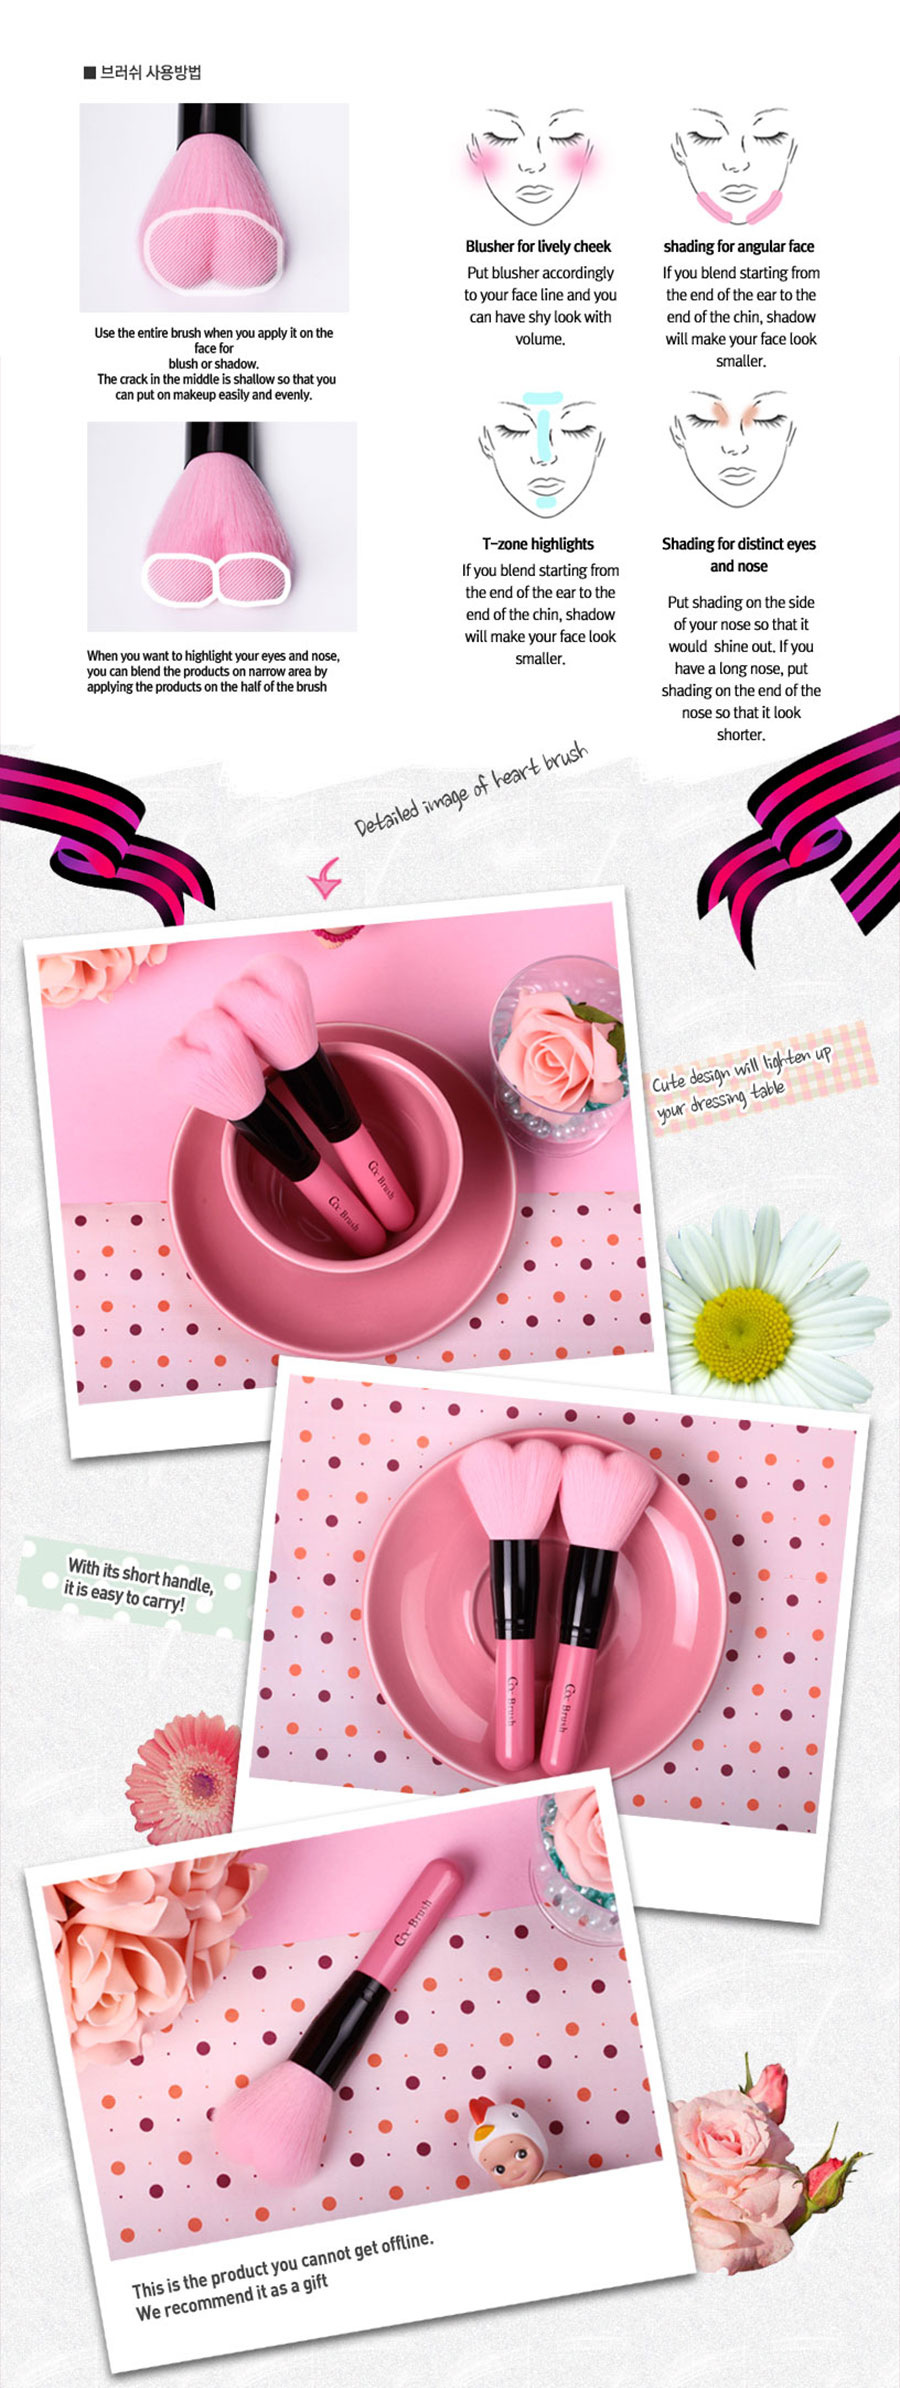 Pink Heart Multi Brush - Benefit